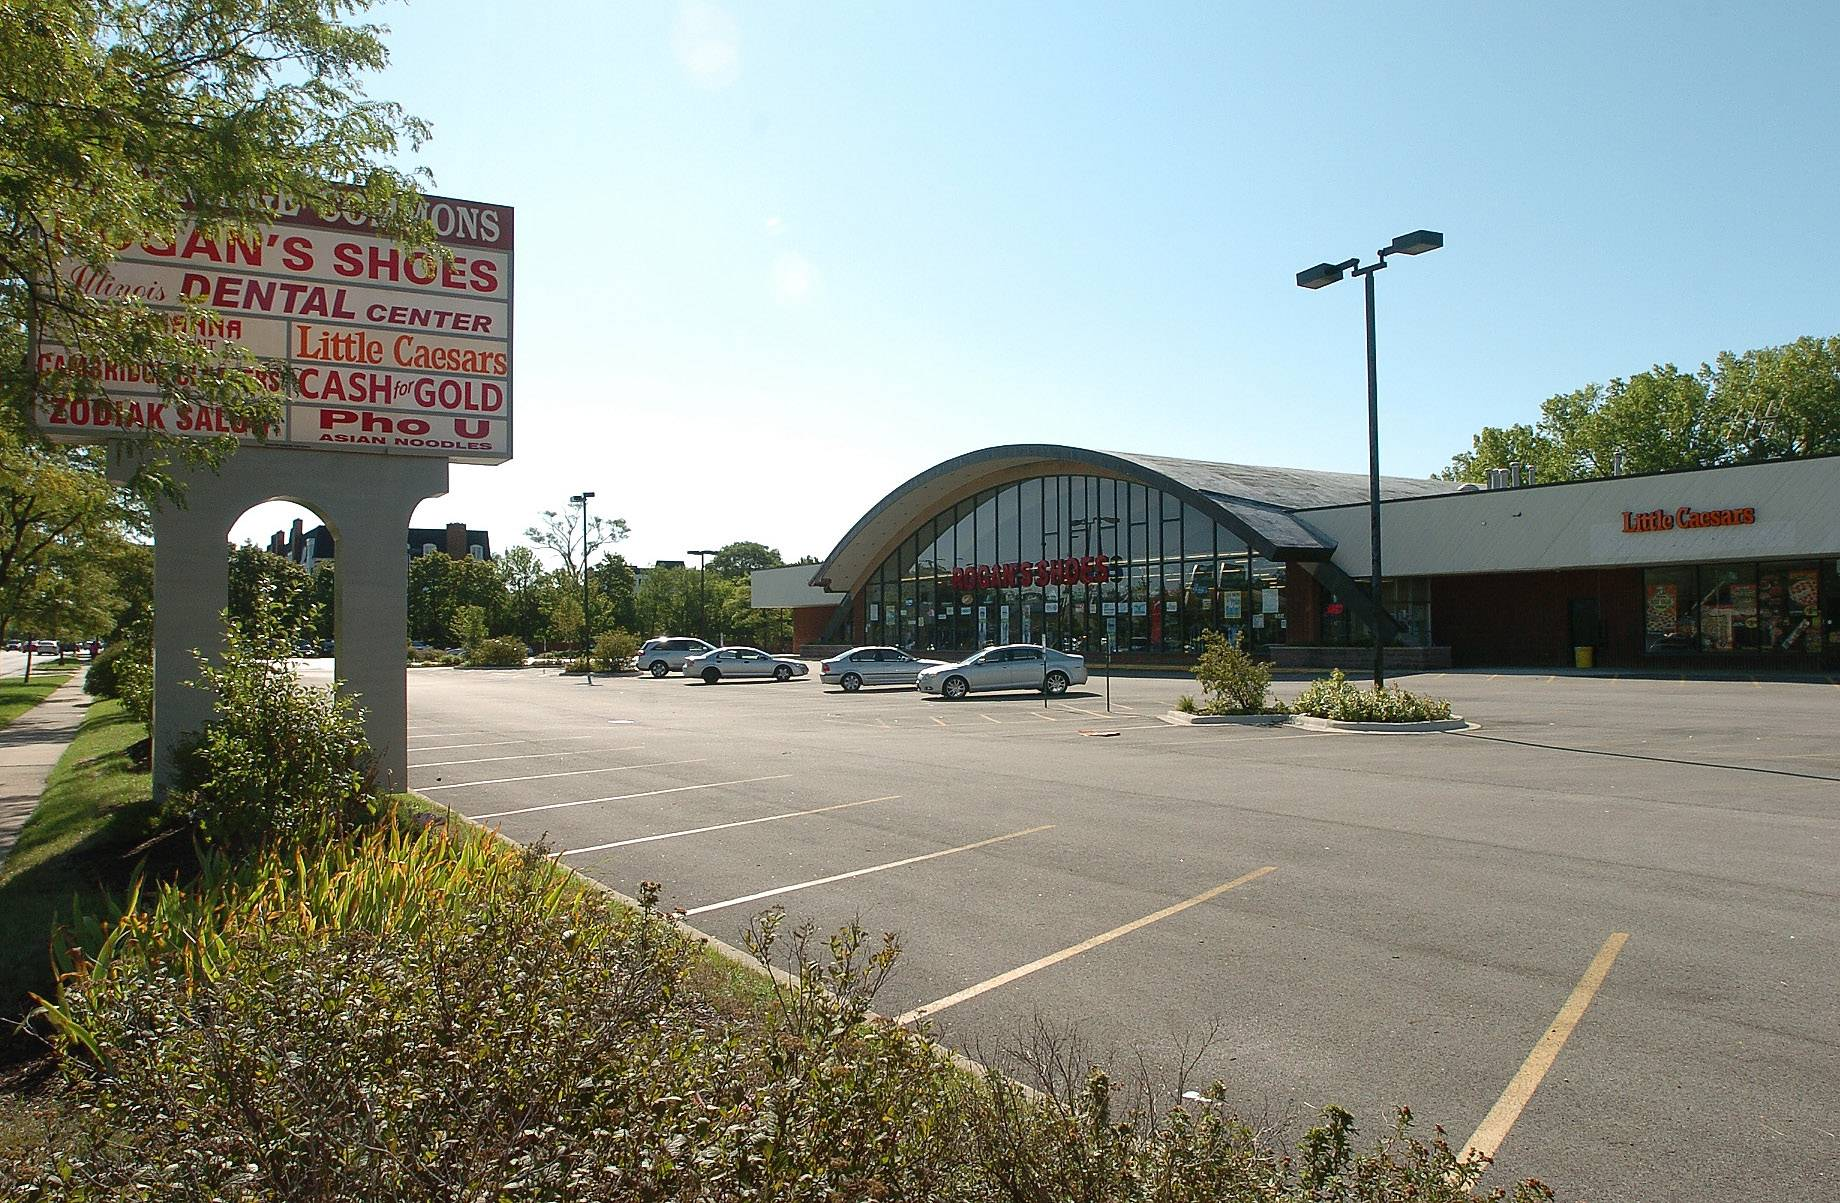 The struggling Cambridge Commons shopping center in Buffalo Grove could get new life with a plan proposed before village leaders this week that would bring a new anchor tenant and about $4 million in upgrades.